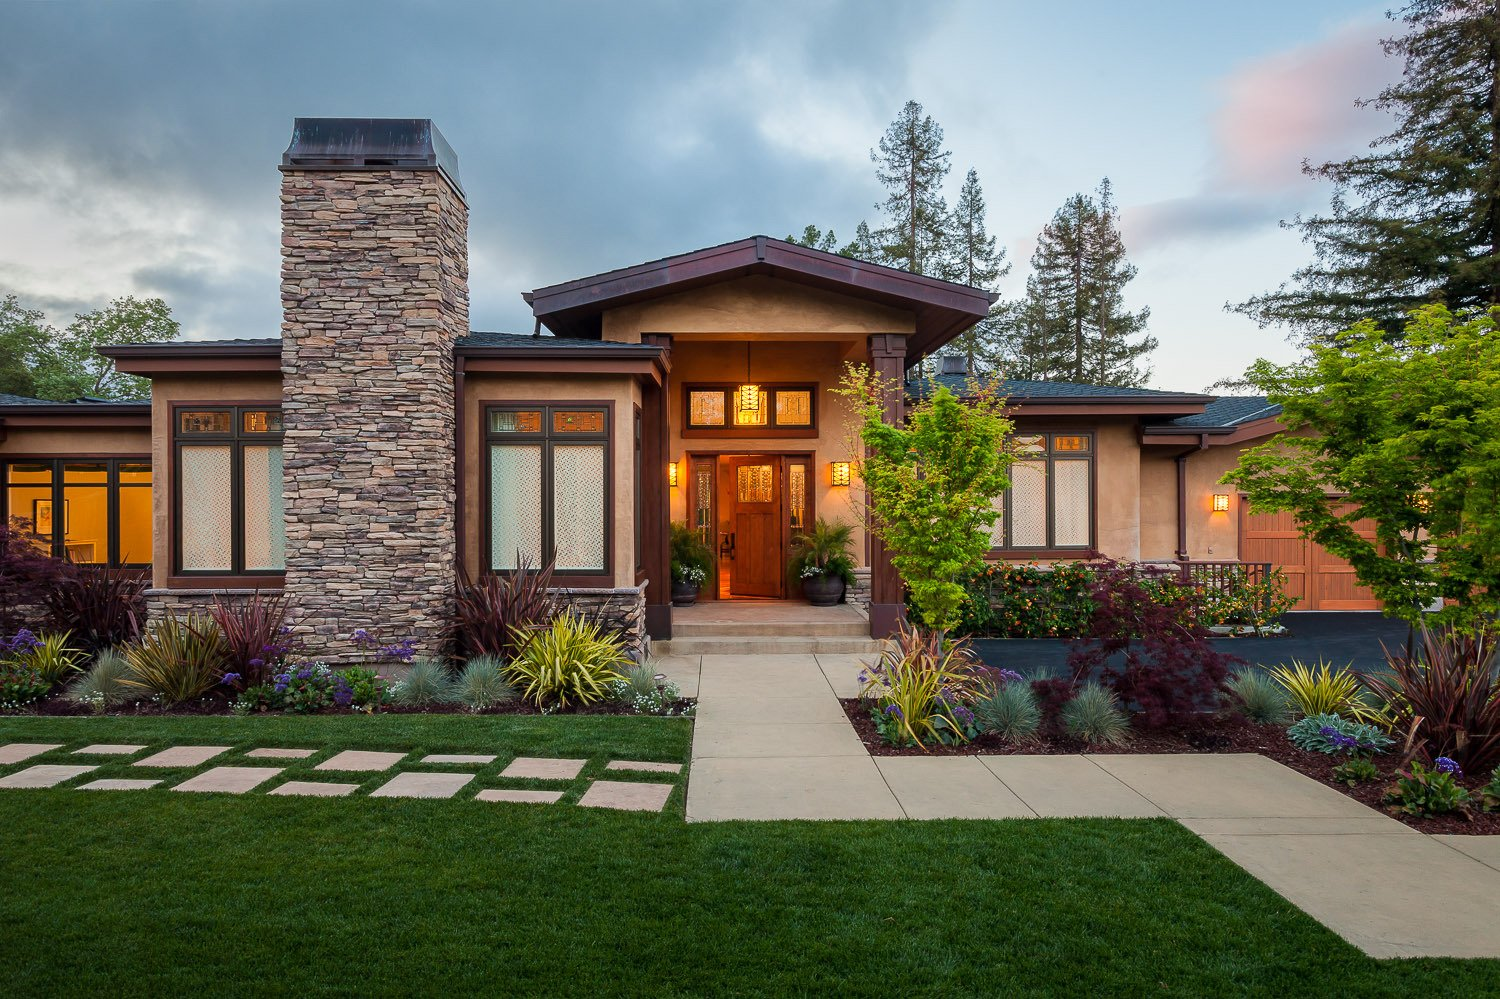 Free Download Craftsman Style House Plans 25462 Wallpapers